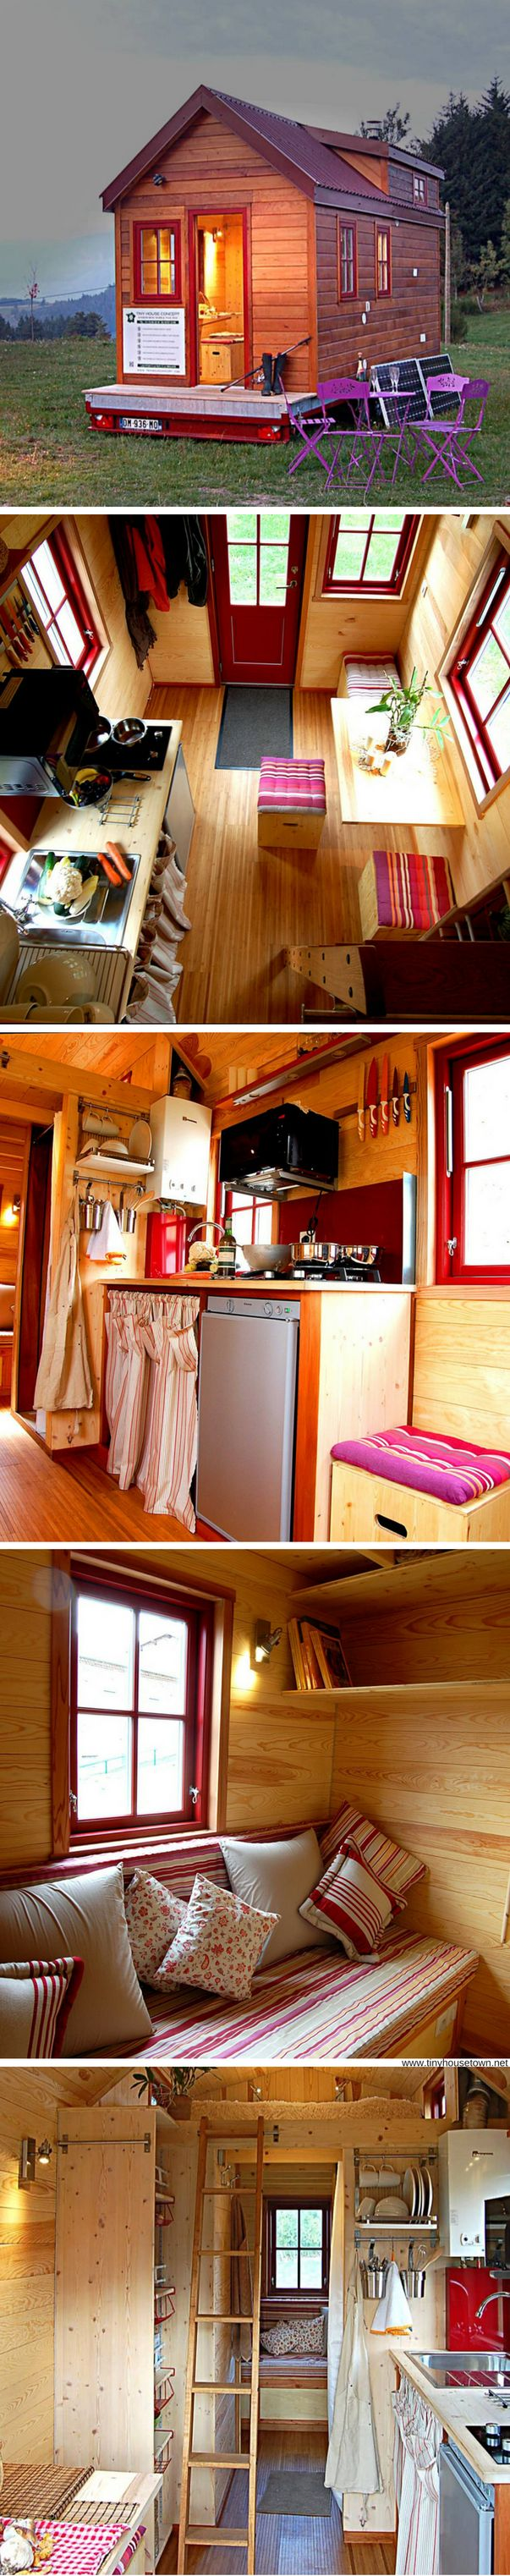 Milvus 560: a two bedroom French tiny house